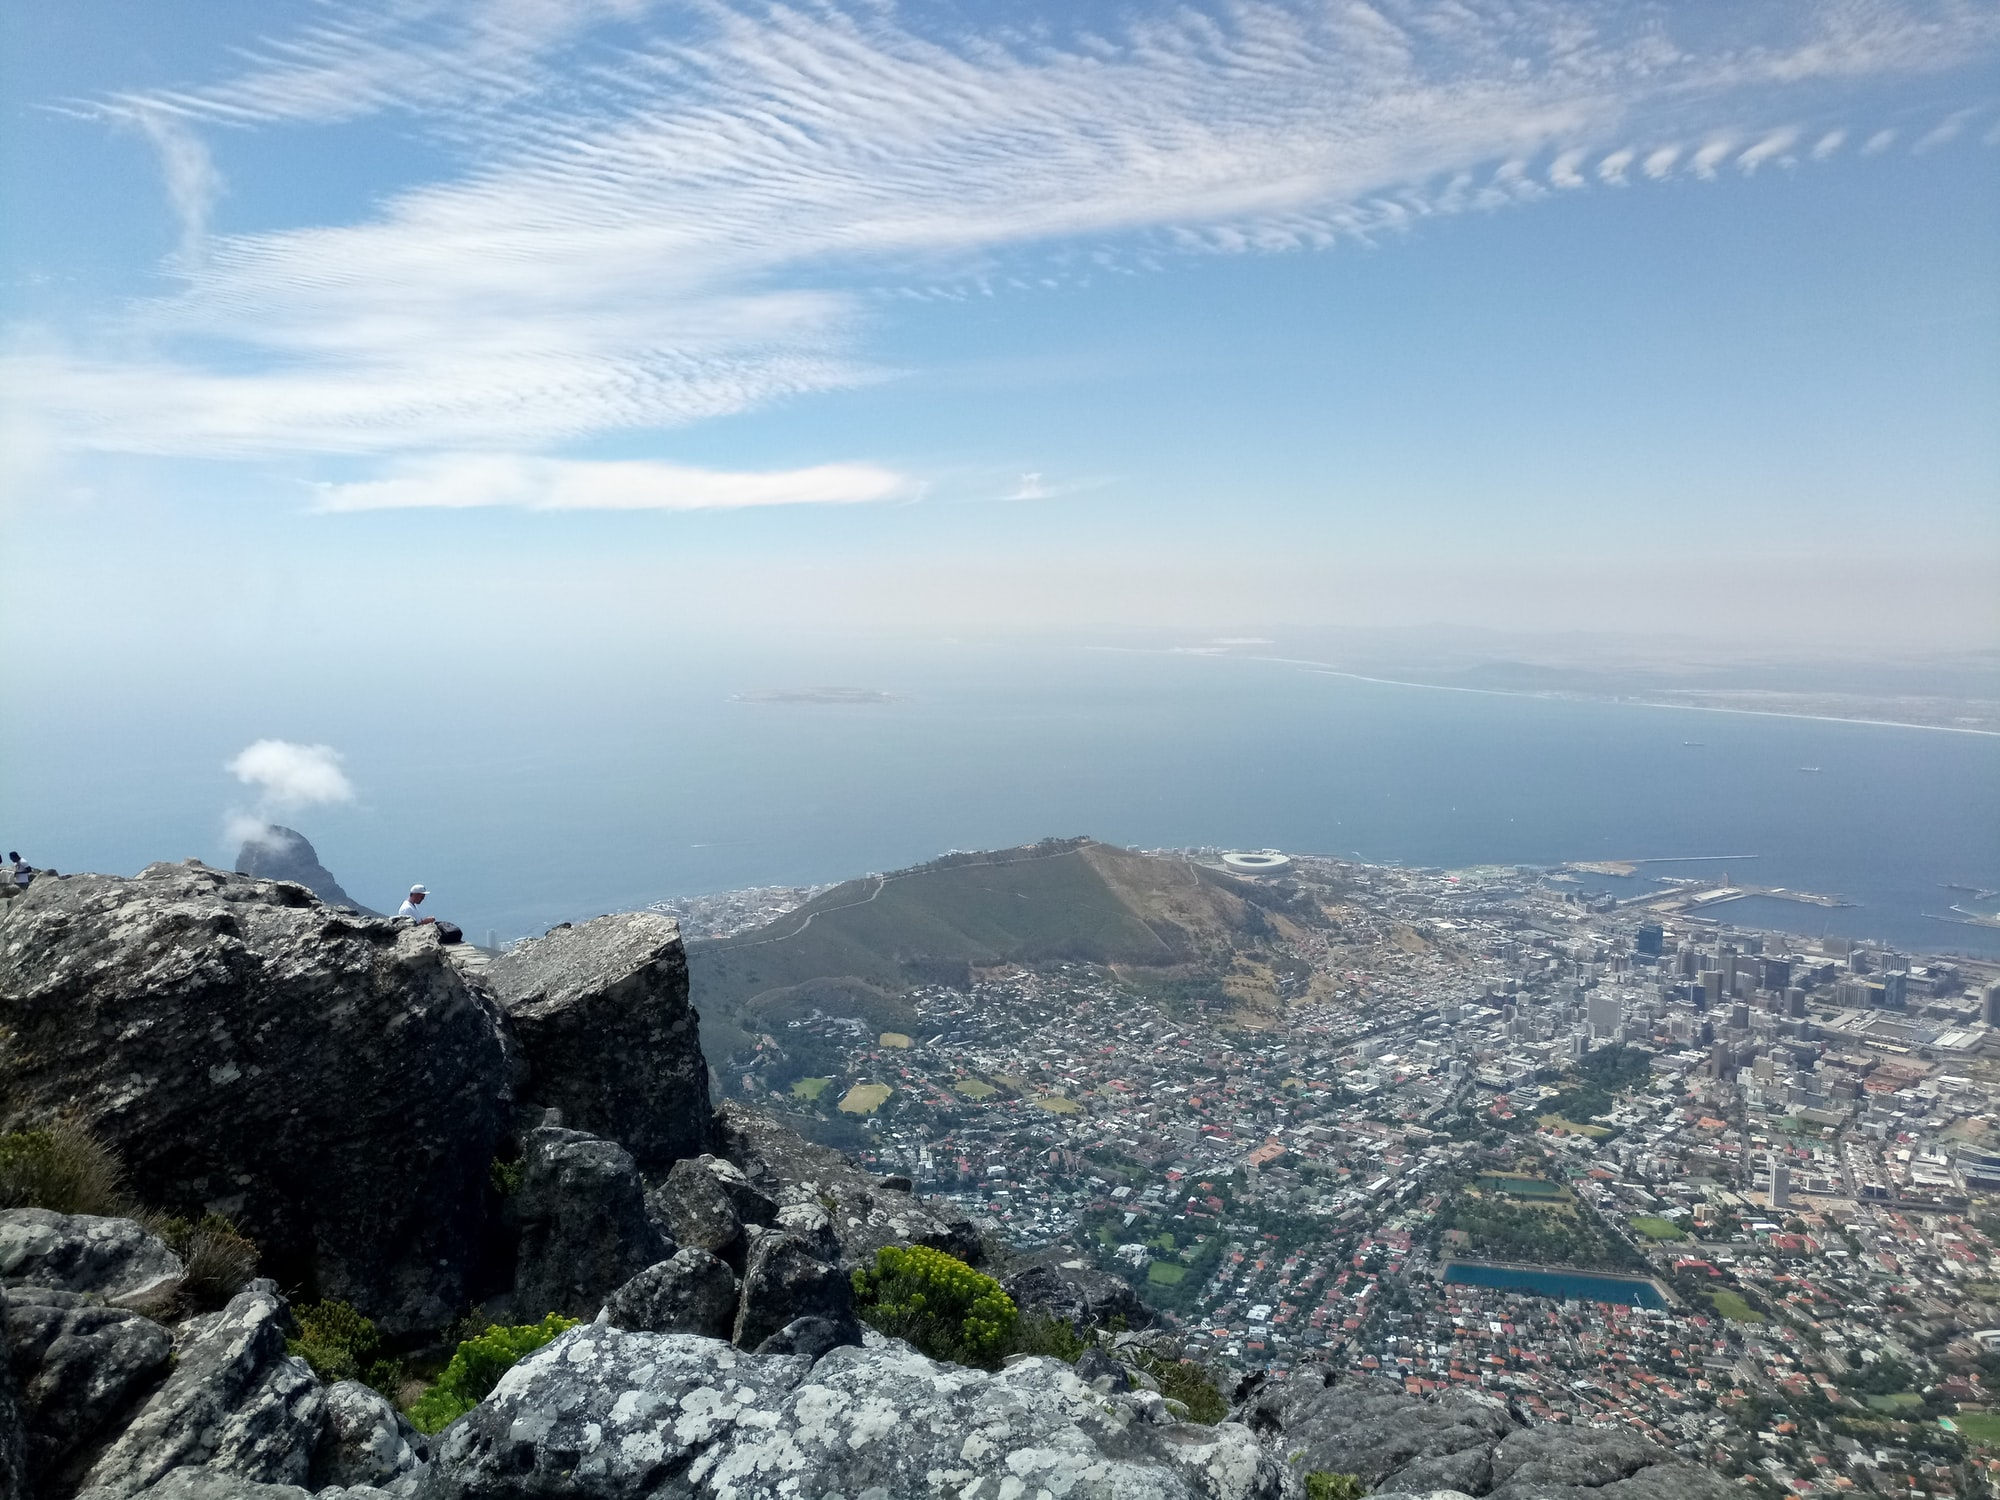 Sunday afternoon hike up table mountain